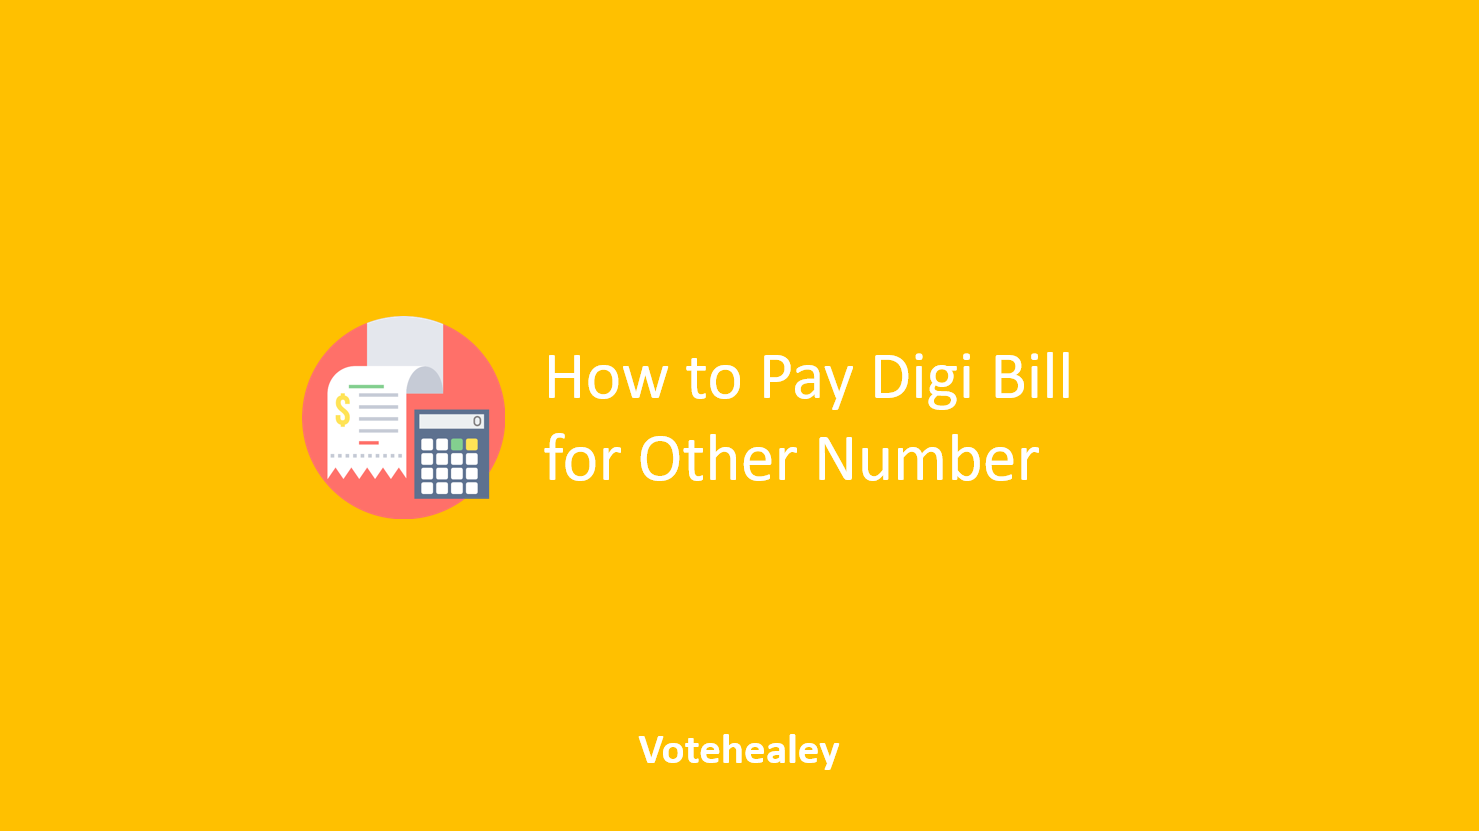 How to Pay Digi Bill for Other Number